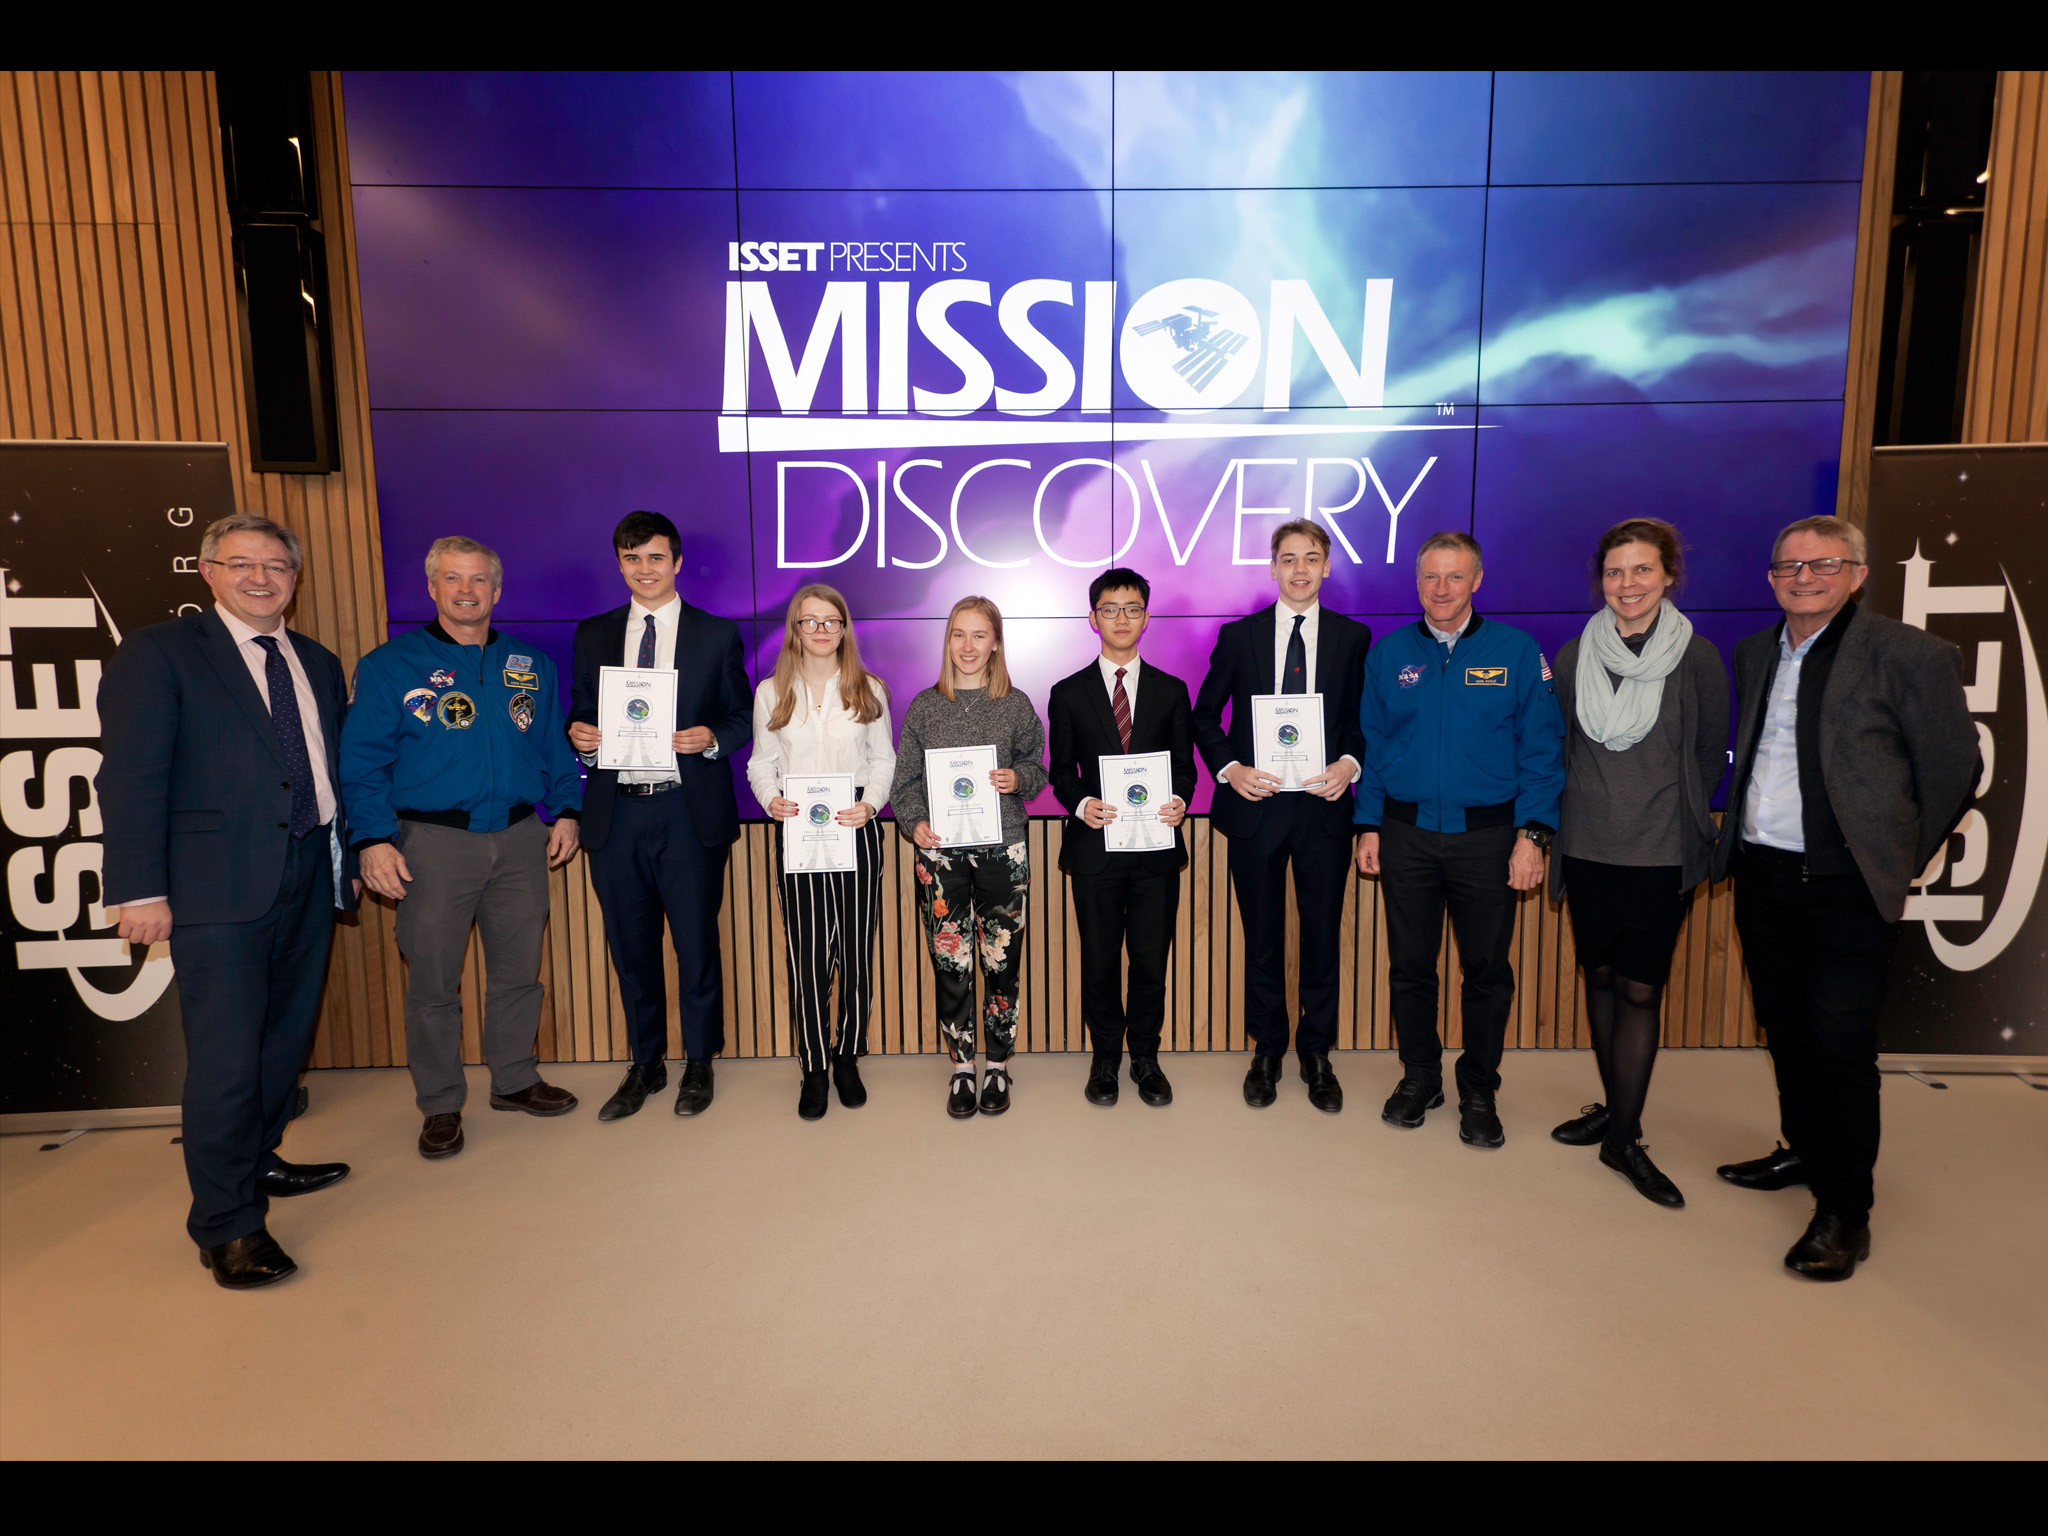 ISSET - Mission Discovery, Summer School, Space Camp, STEM